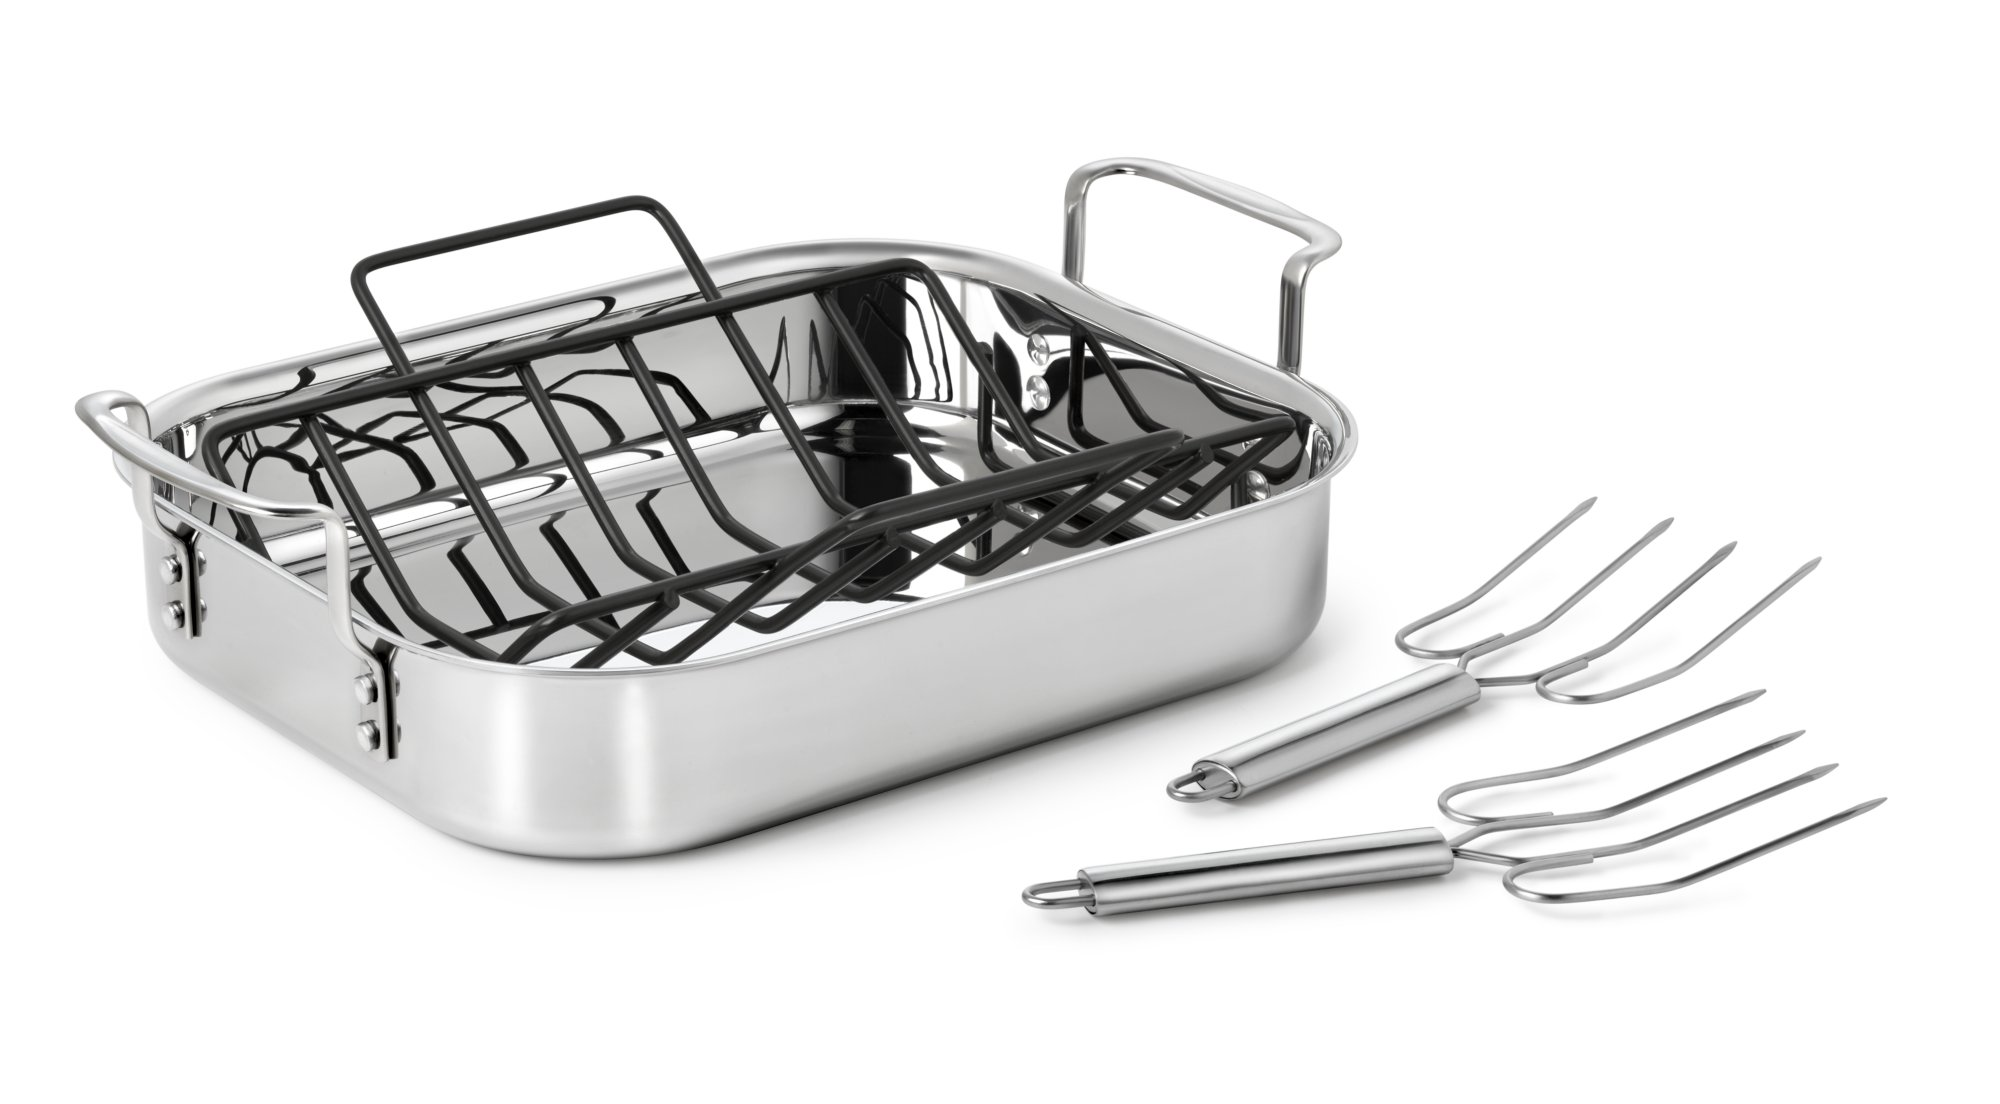 Calphalon Tri-Ply Stainless Steel 14-in. Roaster with Nonstick Rack & Stainless Steel Lifters